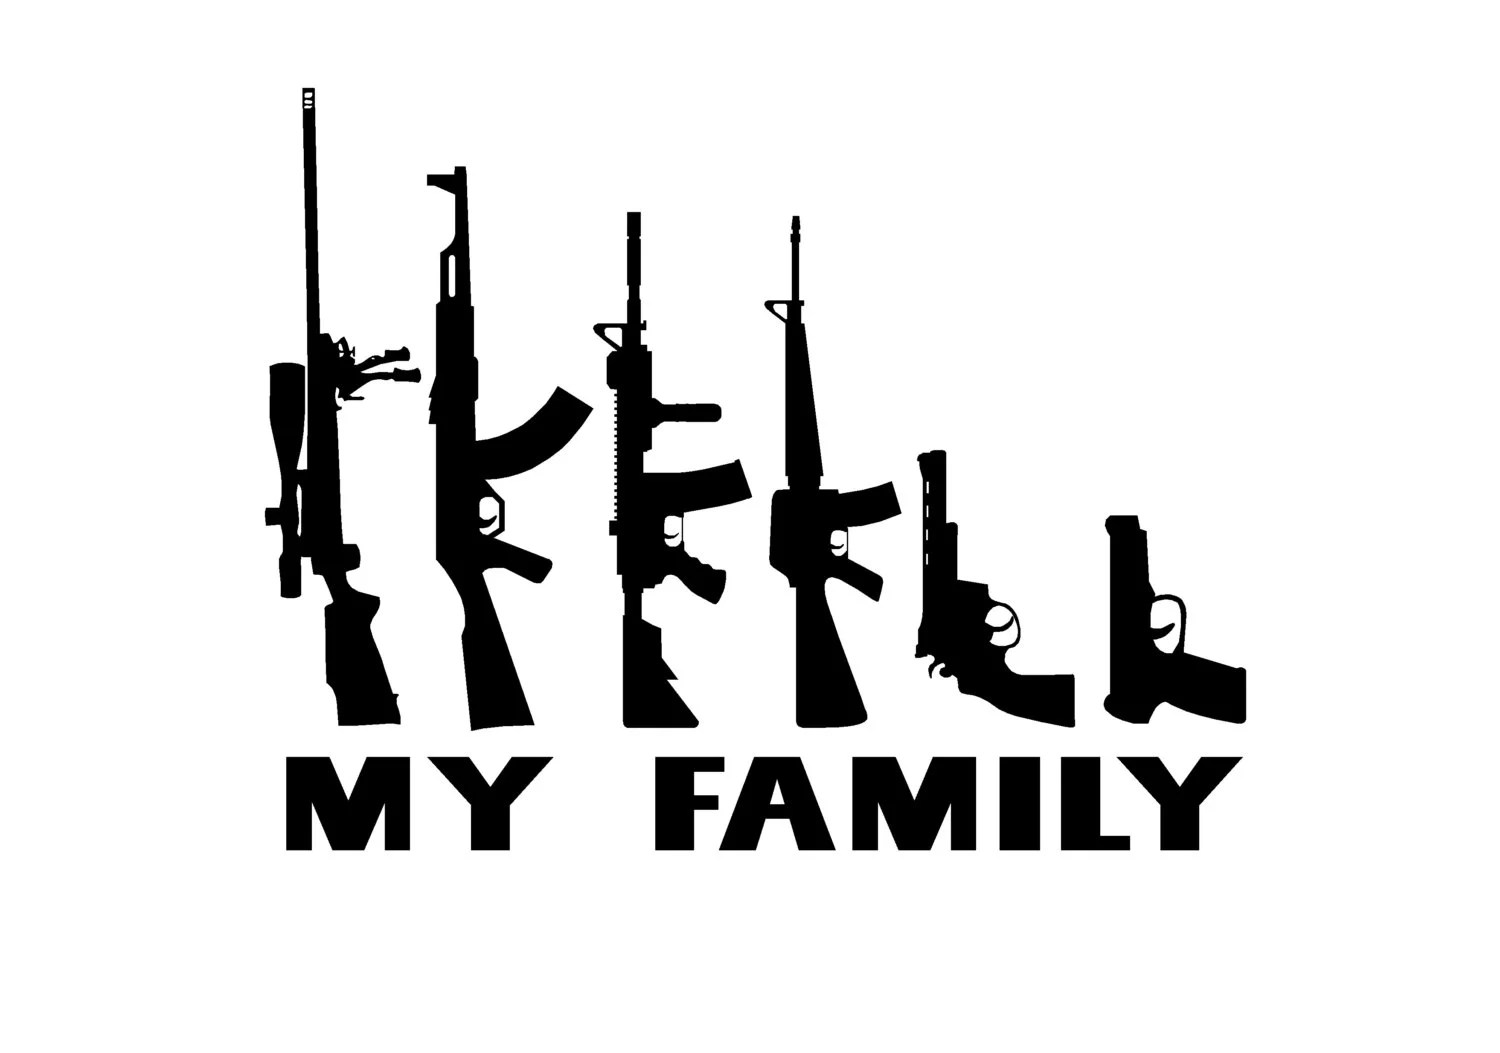 My Family Gun Stick Figure Family Decal 4 9